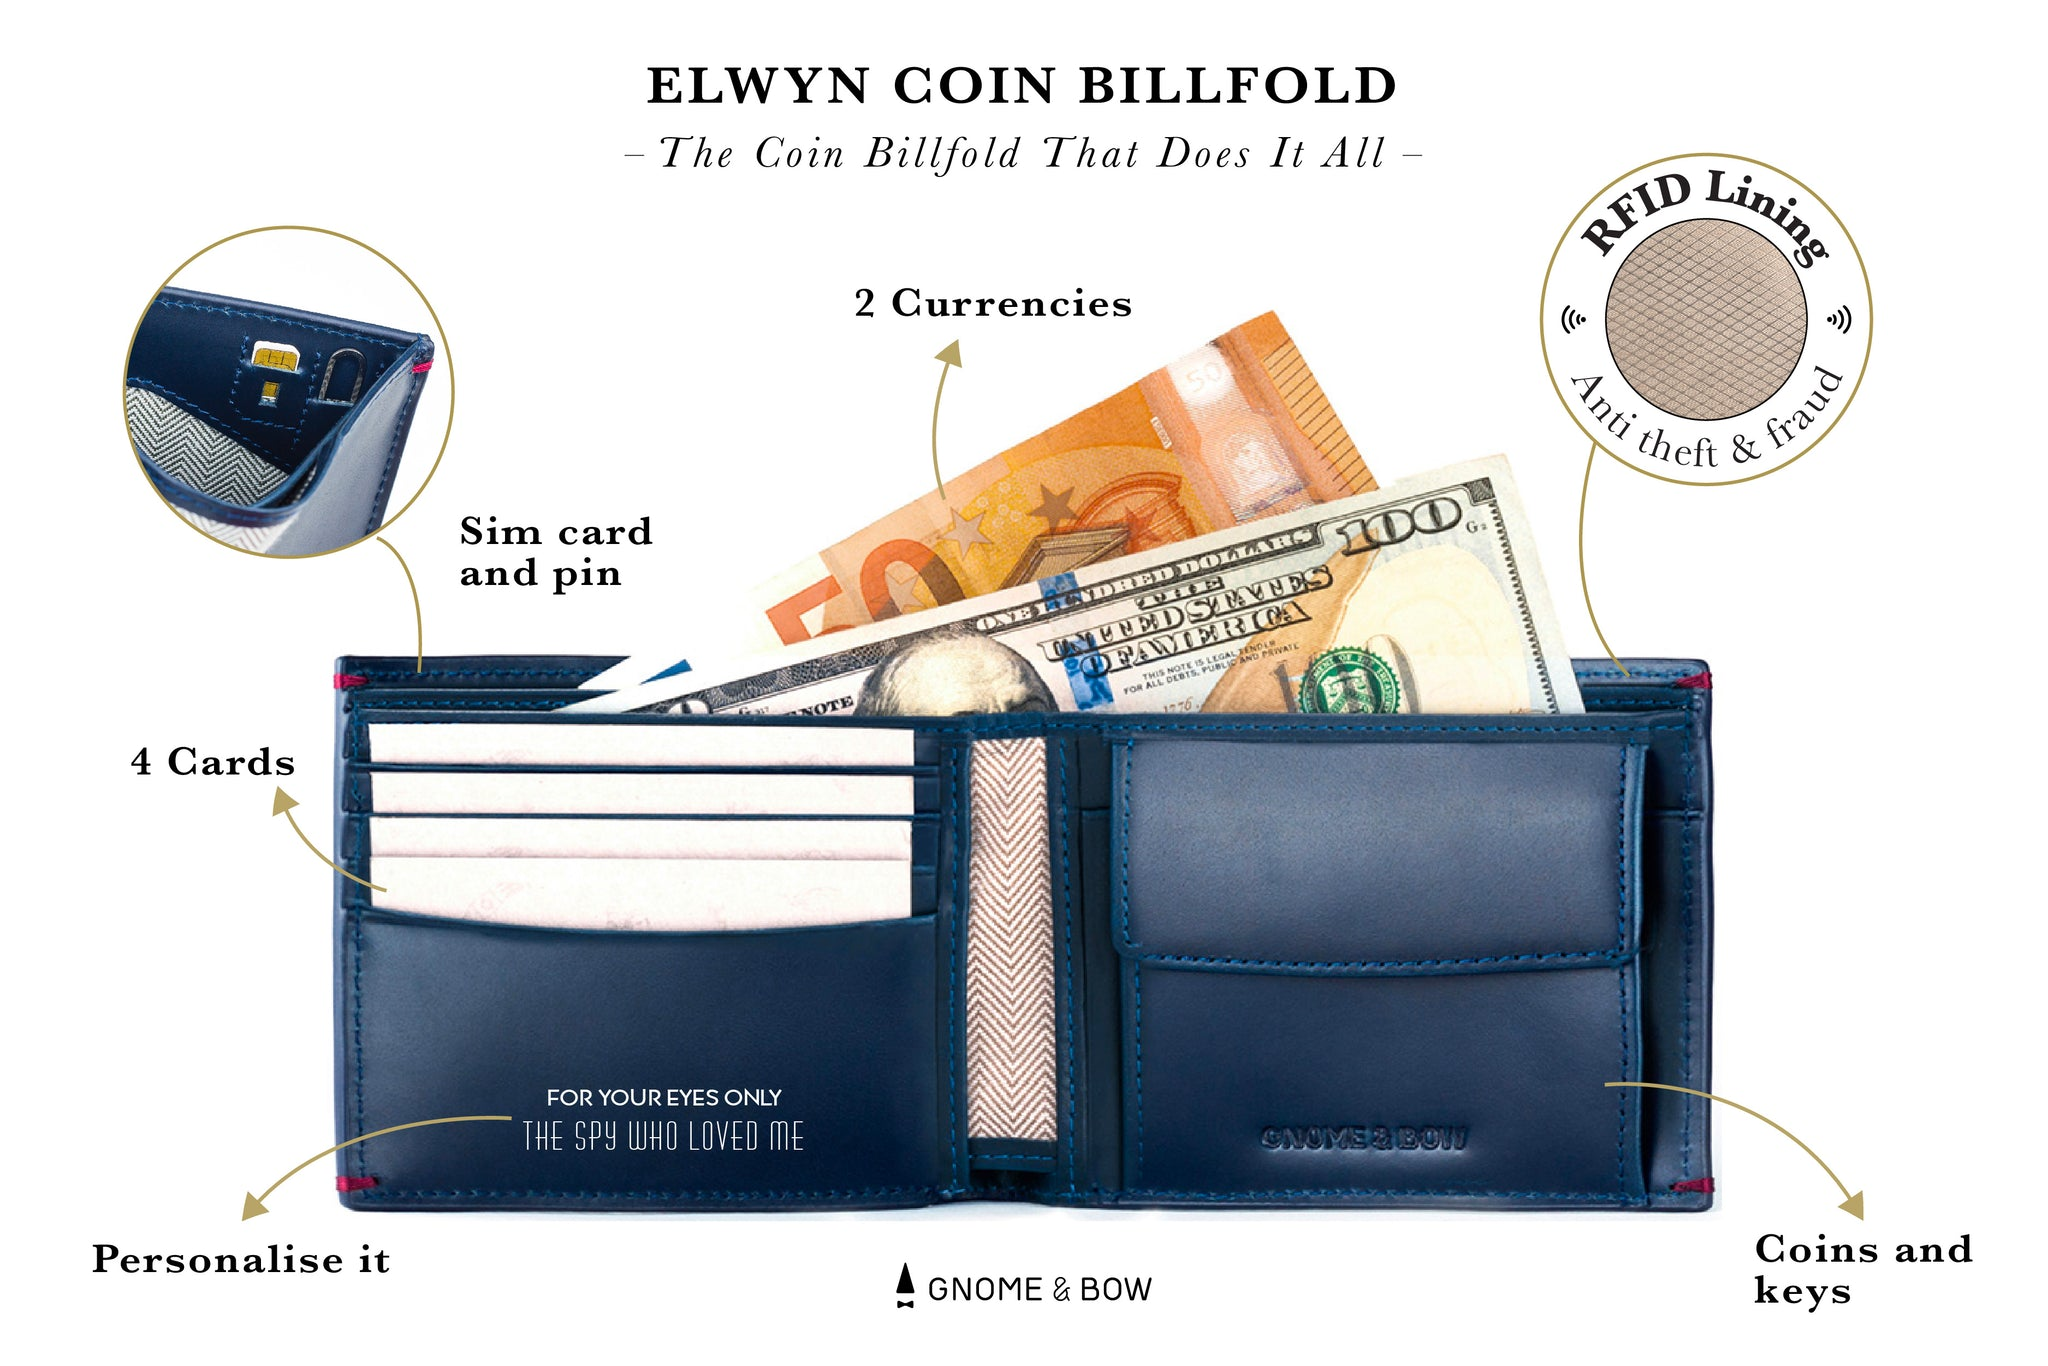 Gnome & Bow Leather Elwyn Coin Billfold RFID